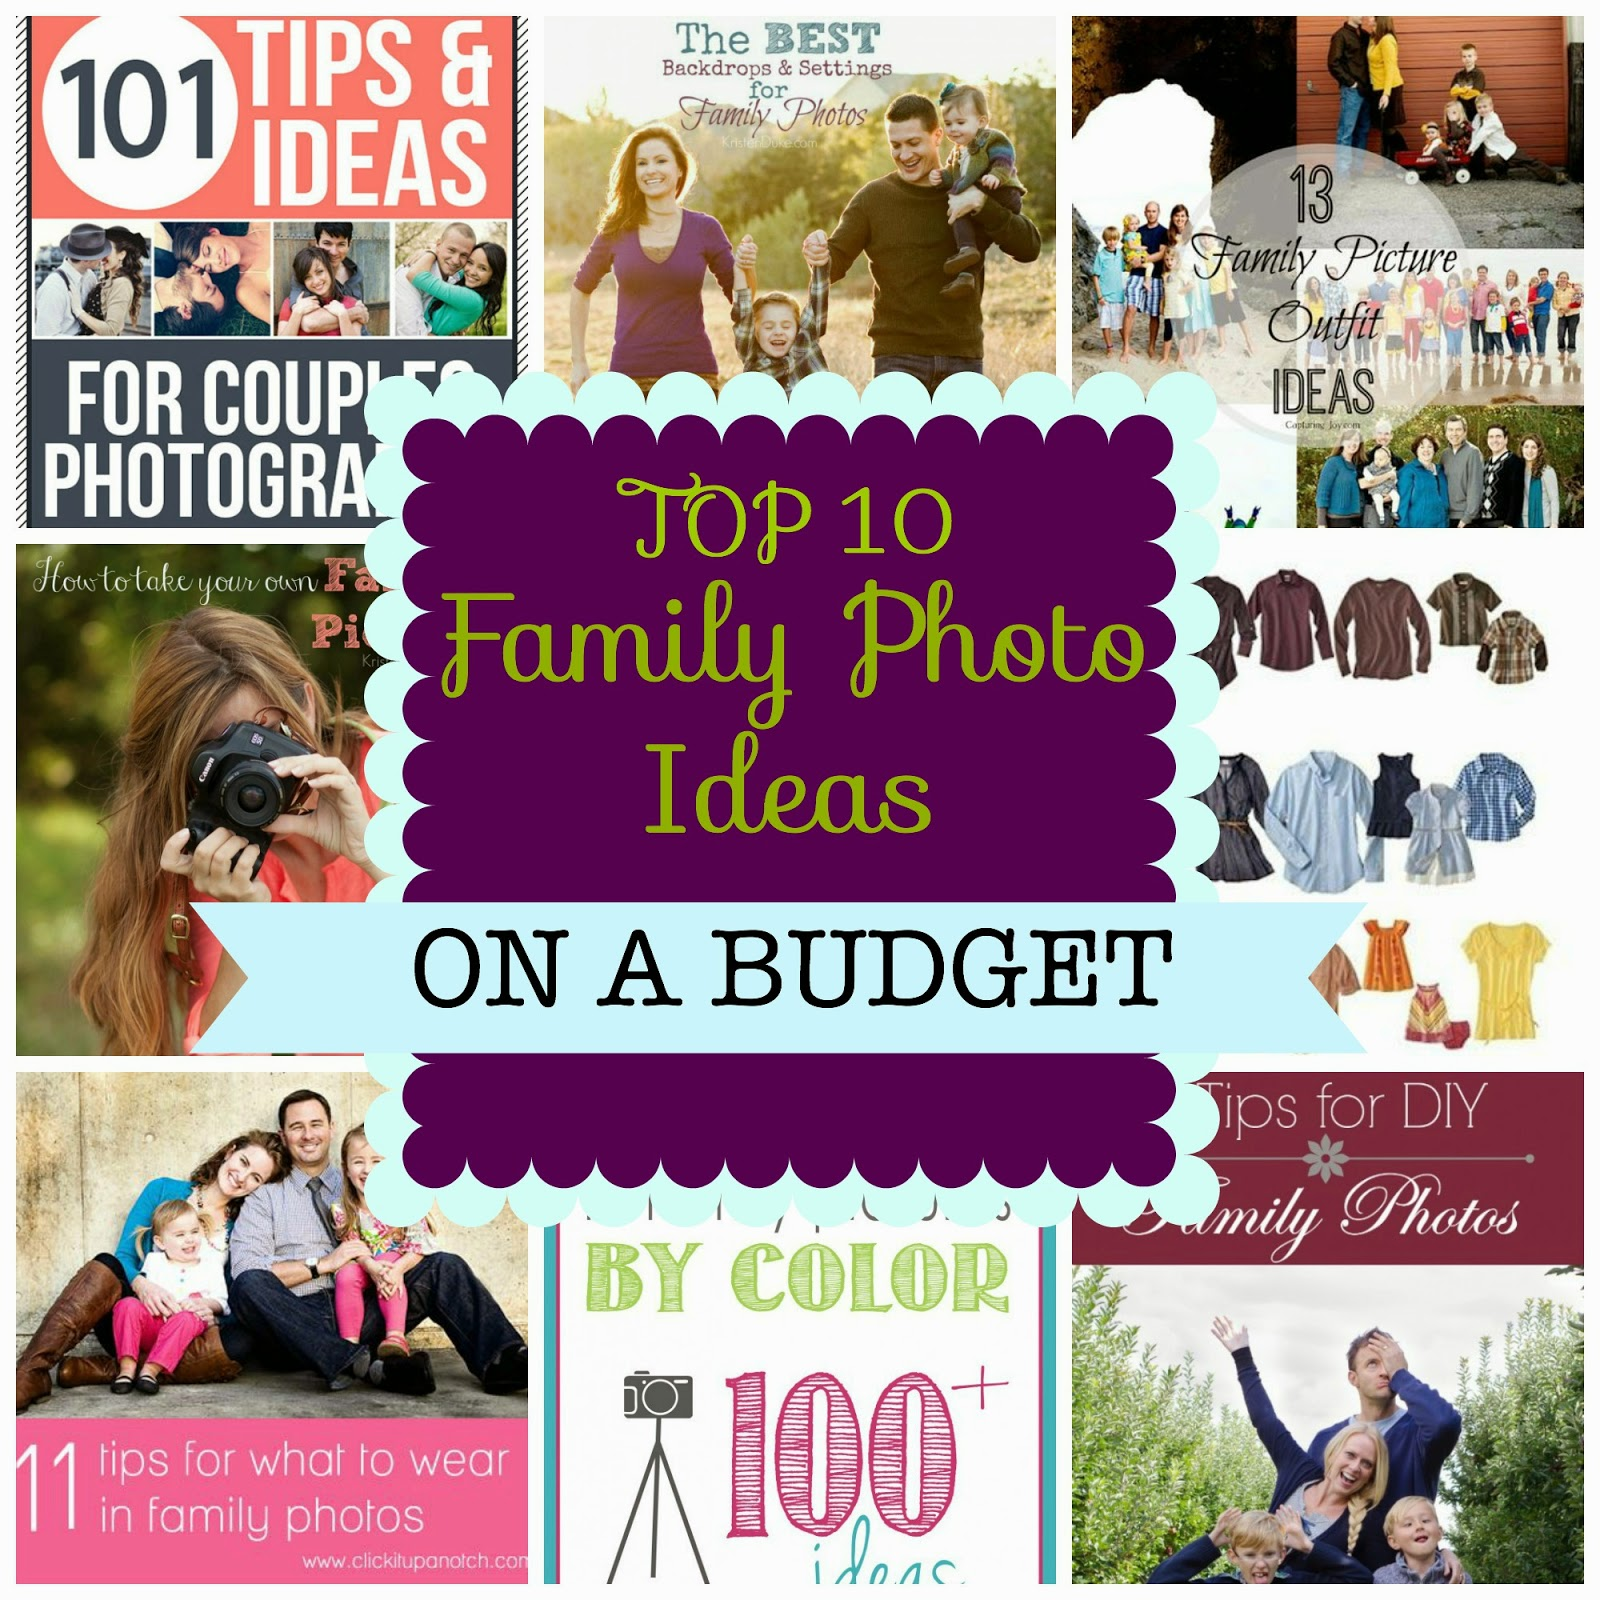 Top 10 Family Photo Ideas on a Budget